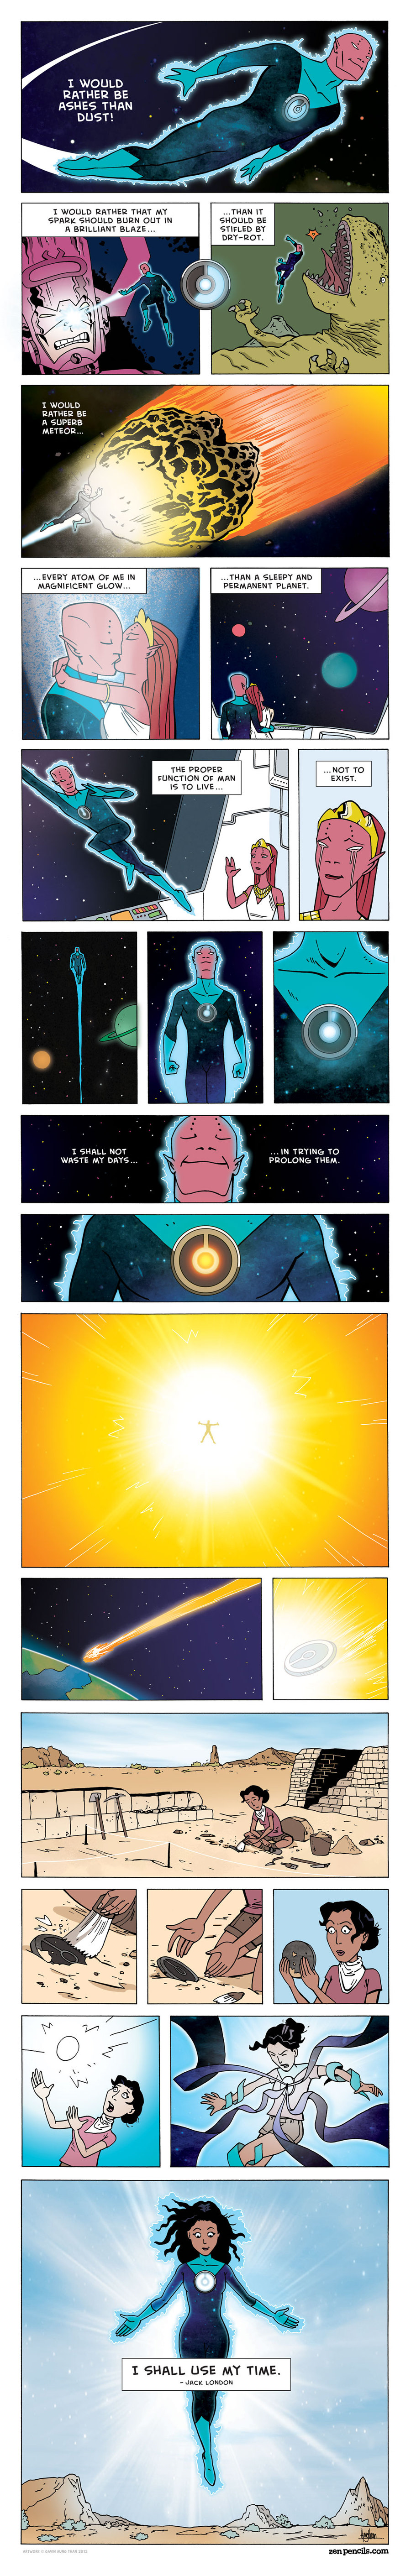 Zen Pencils for Mar 24, 2014 Comic Strip